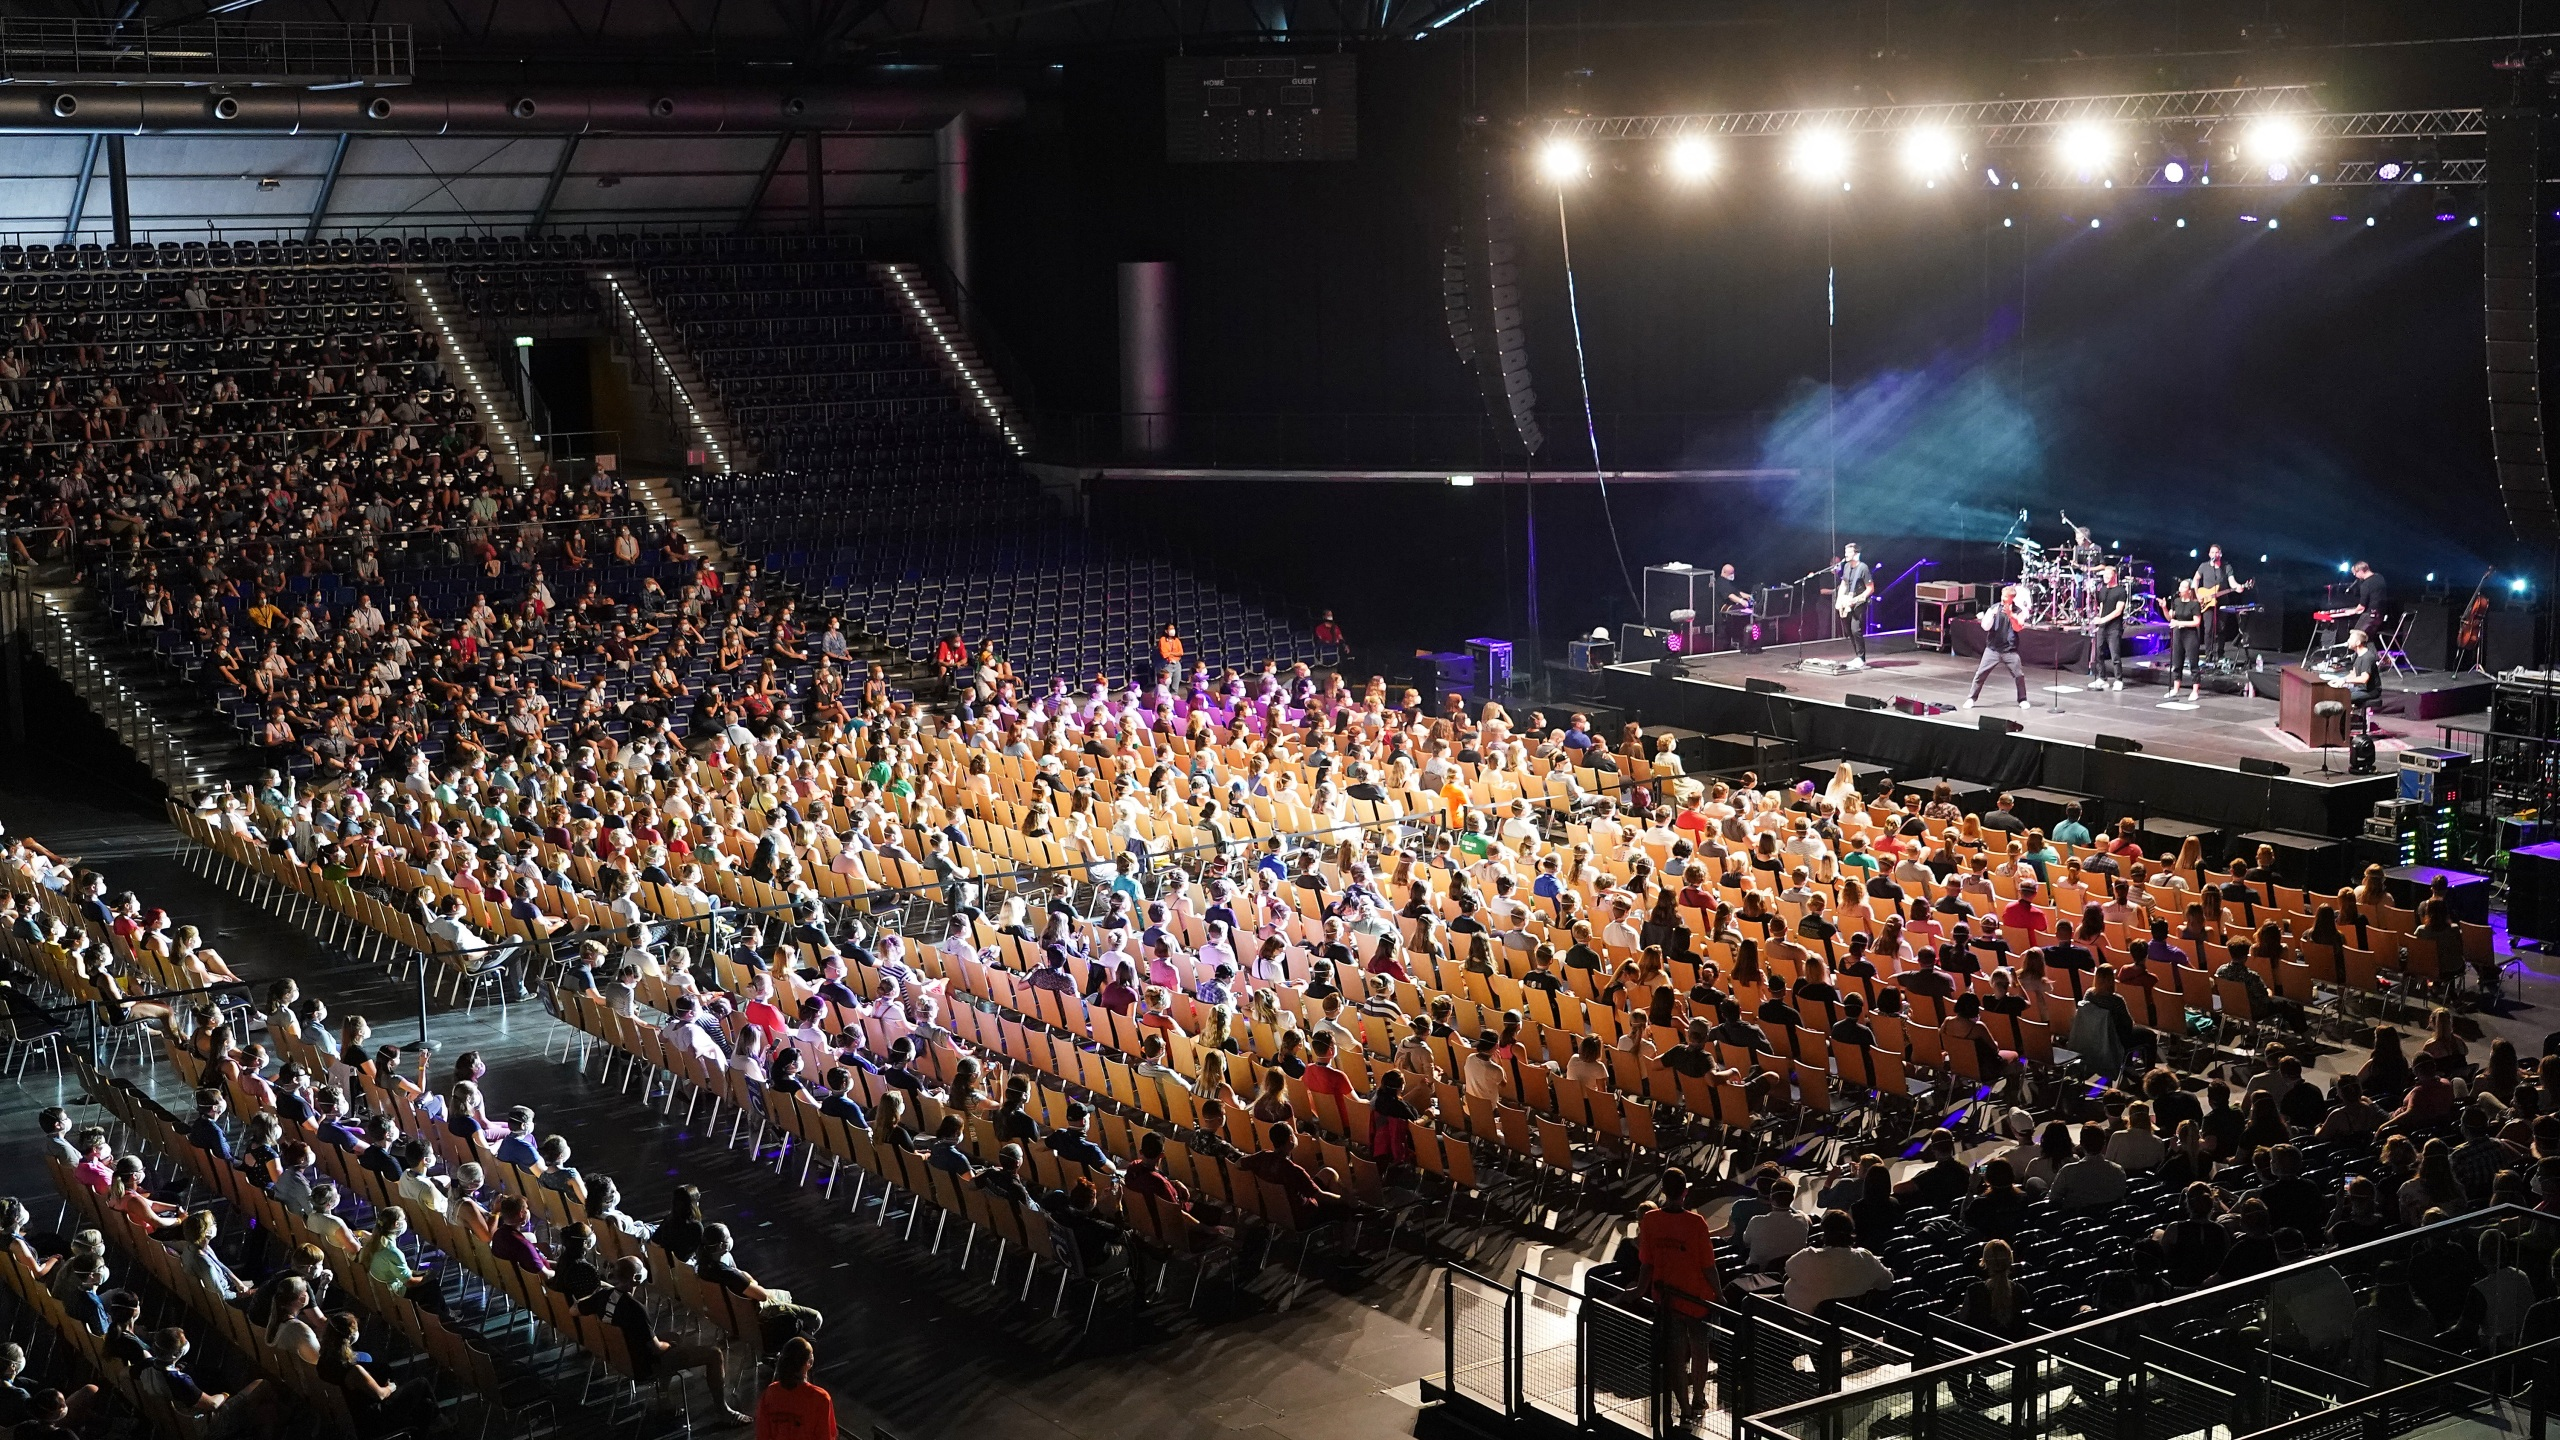 Participants wearing protective face masks watch singer Tim Bendzko perform in the RESTART-19 Covid transmission risk assessment study in a concert setting at an indoor arena during on Aug. 22, 2020, in Leipzig, Germany. (Sean Gallup/Getty Images)